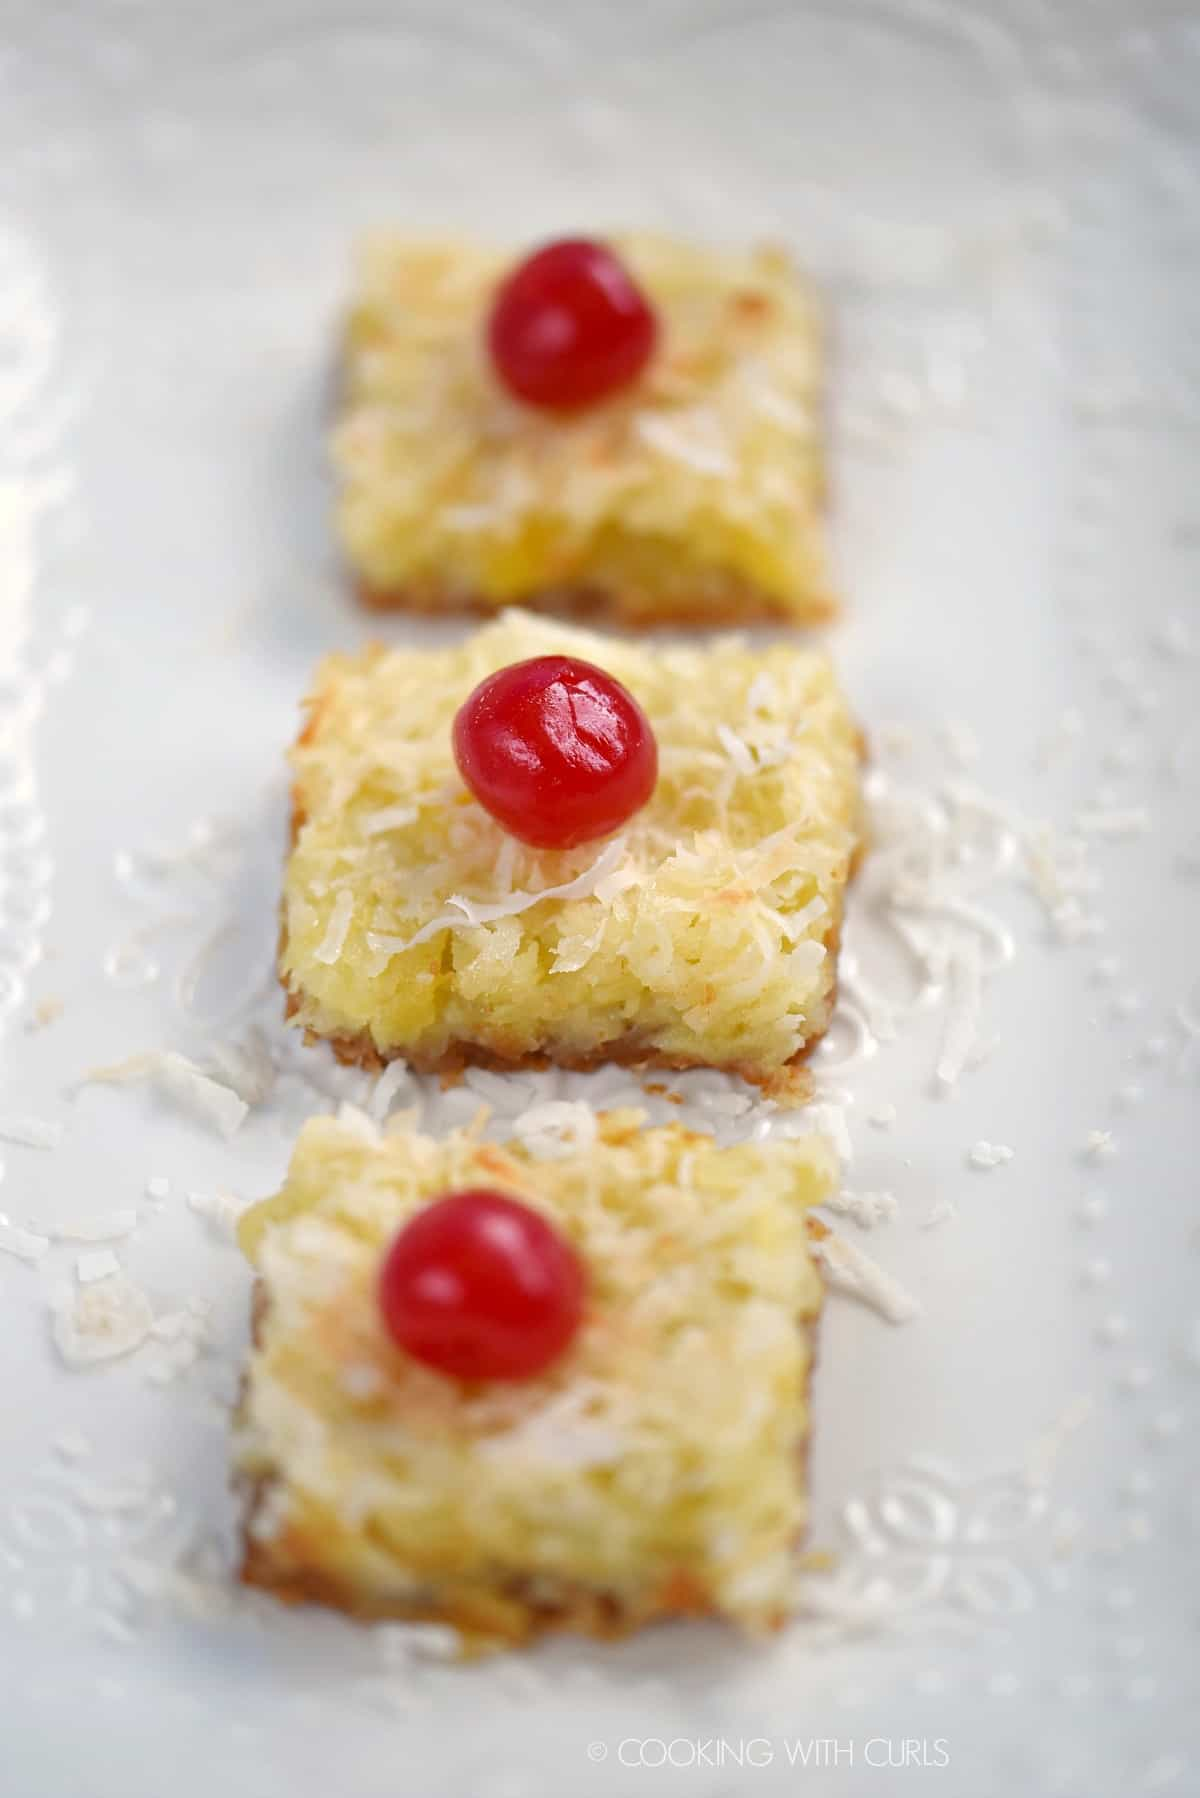 Three cherry topped Pina Colada Bars lined up on a white plate.